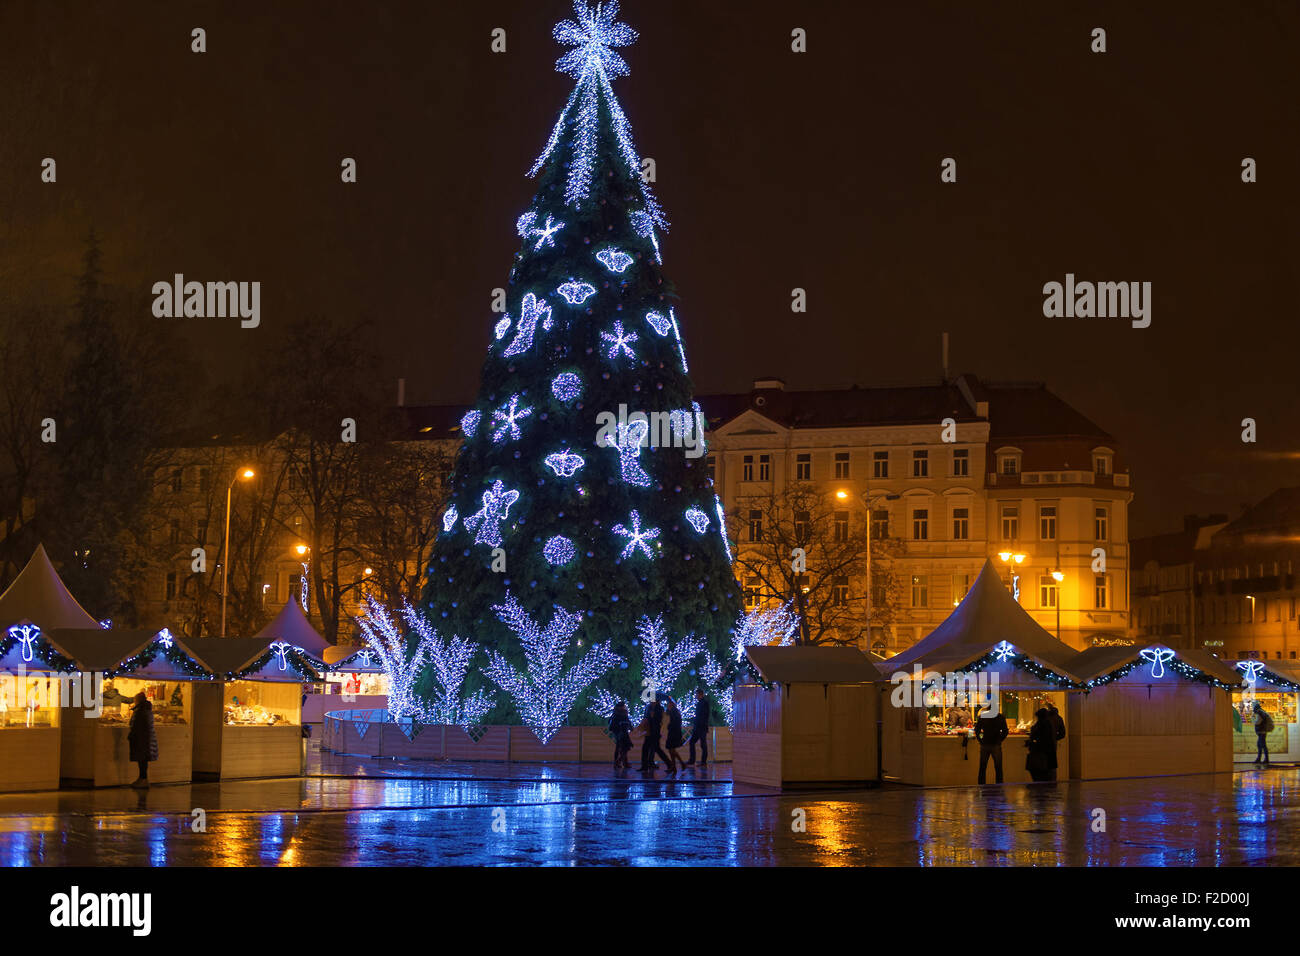 stock photo traditional european christmas market in vilnius lithuania at night christmas tree decorated with angels snowflakes and blue lights - European Christmas Tree